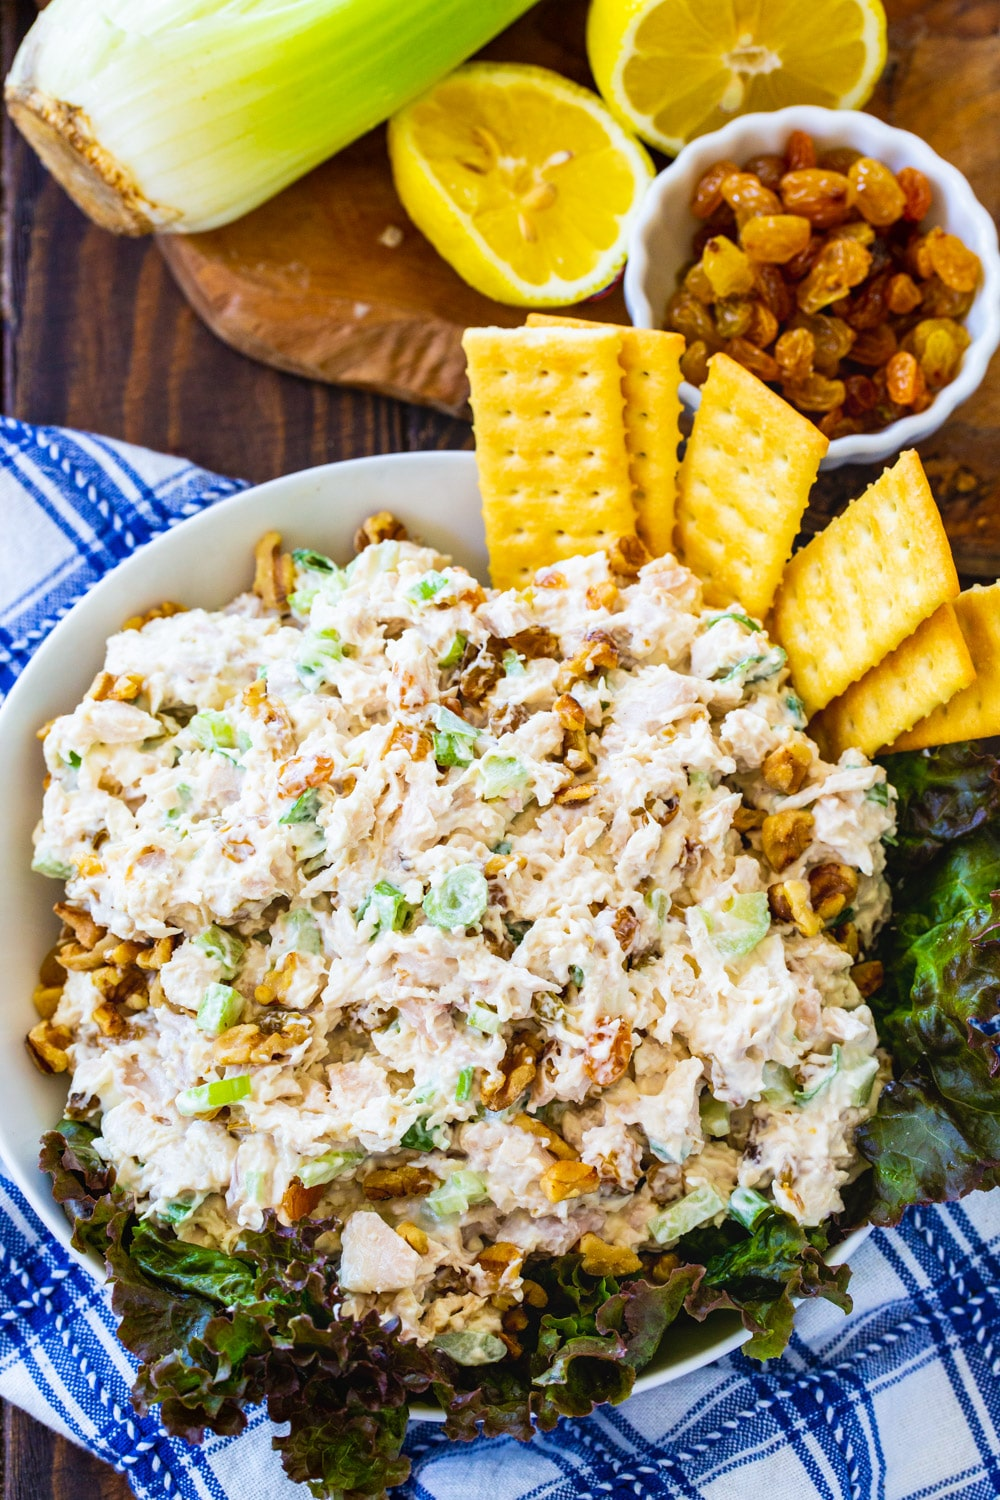 Overhead view of Golden Chicken Salad with bowl of raisins.